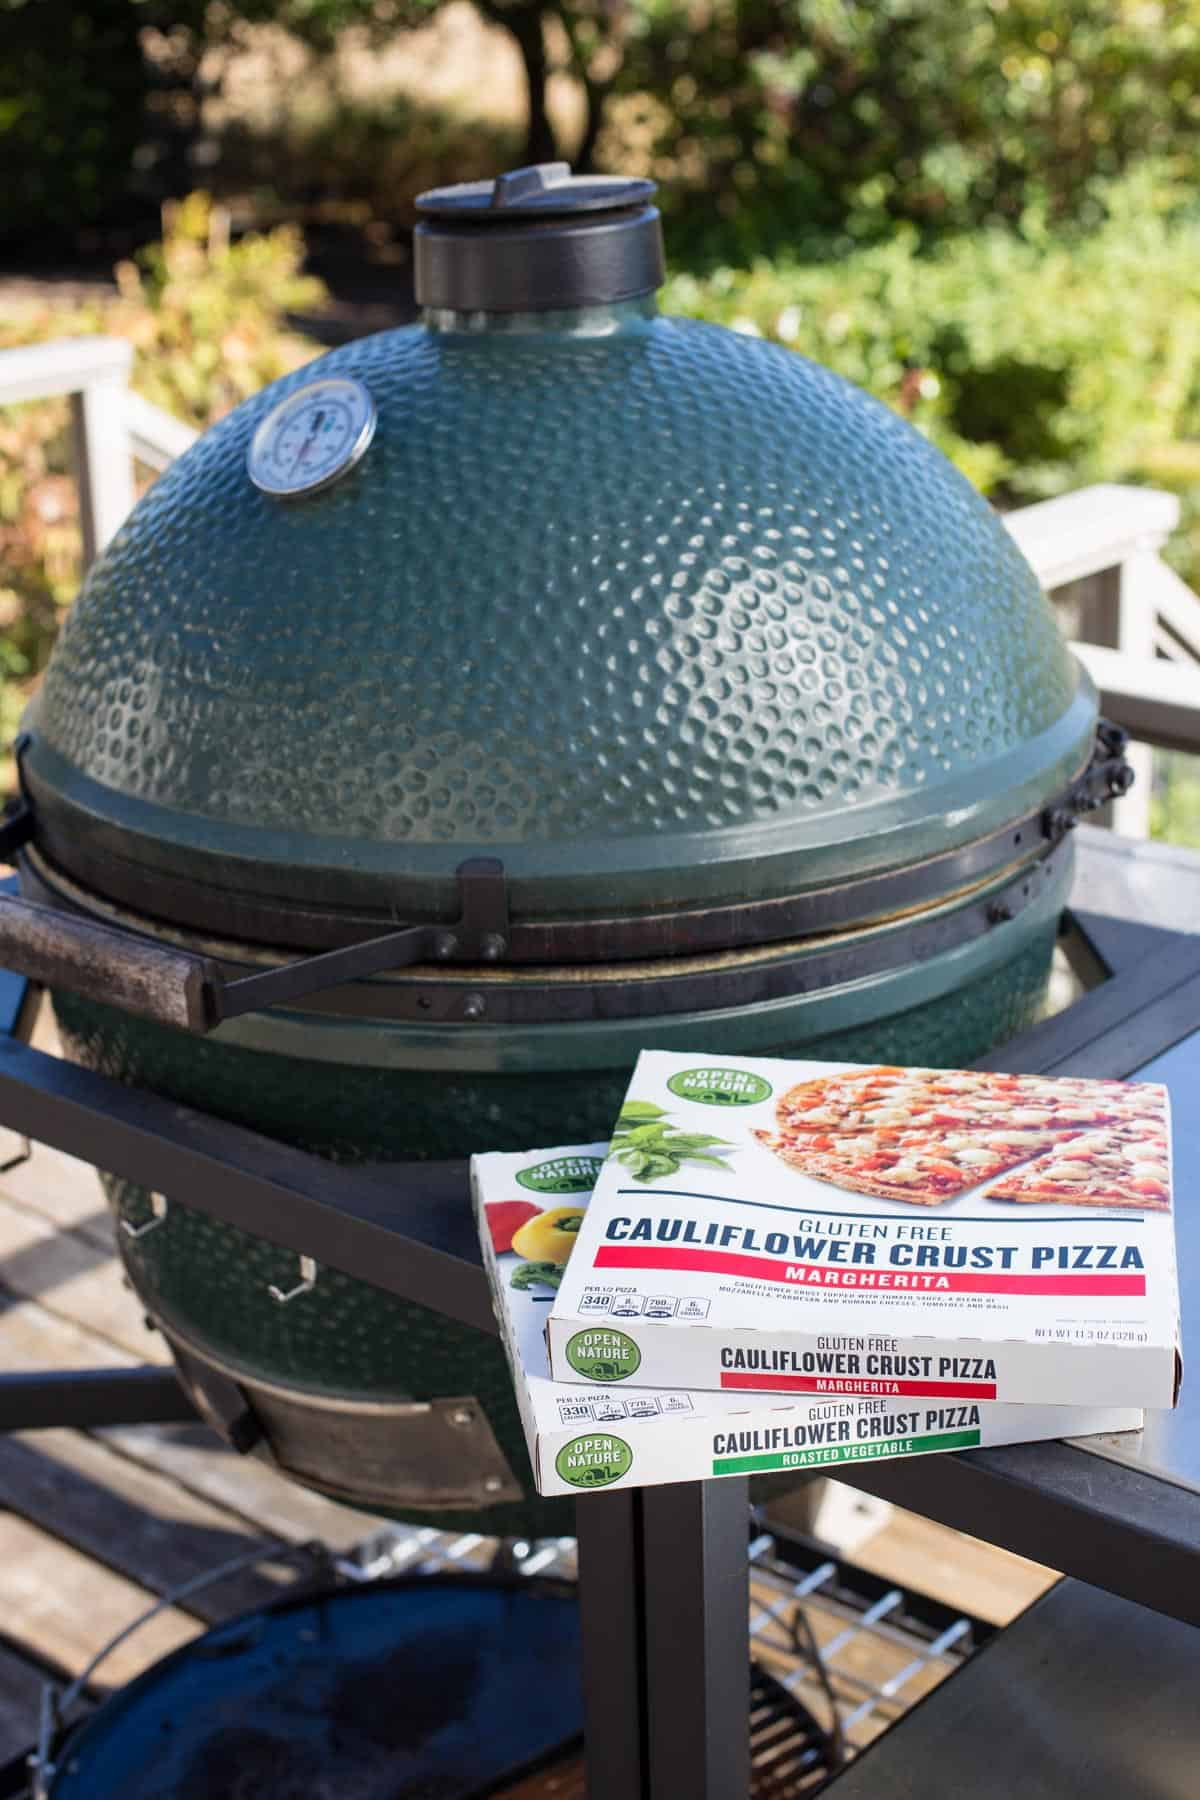 Two frozen pizzas right next to a Big Green Egg grill